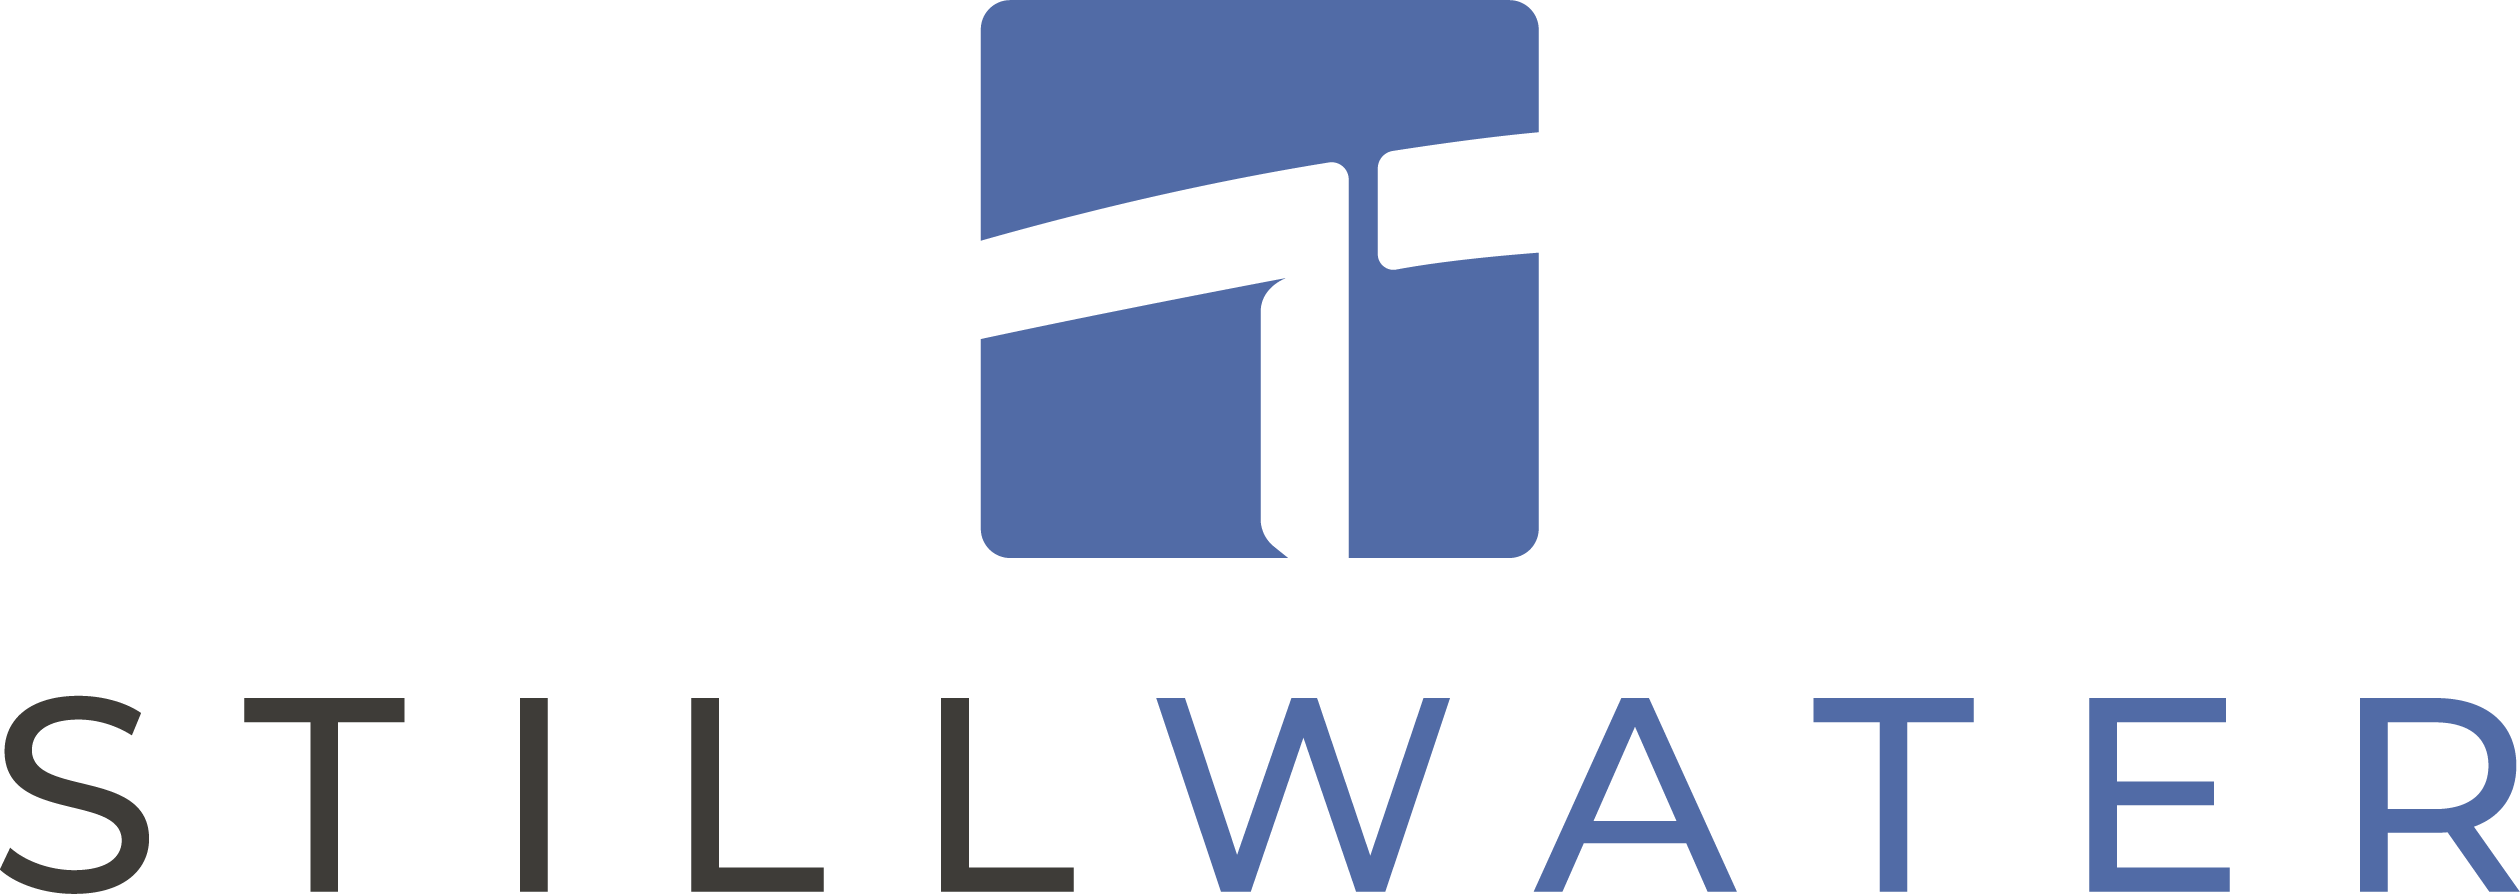 Stillwater Equity Partners